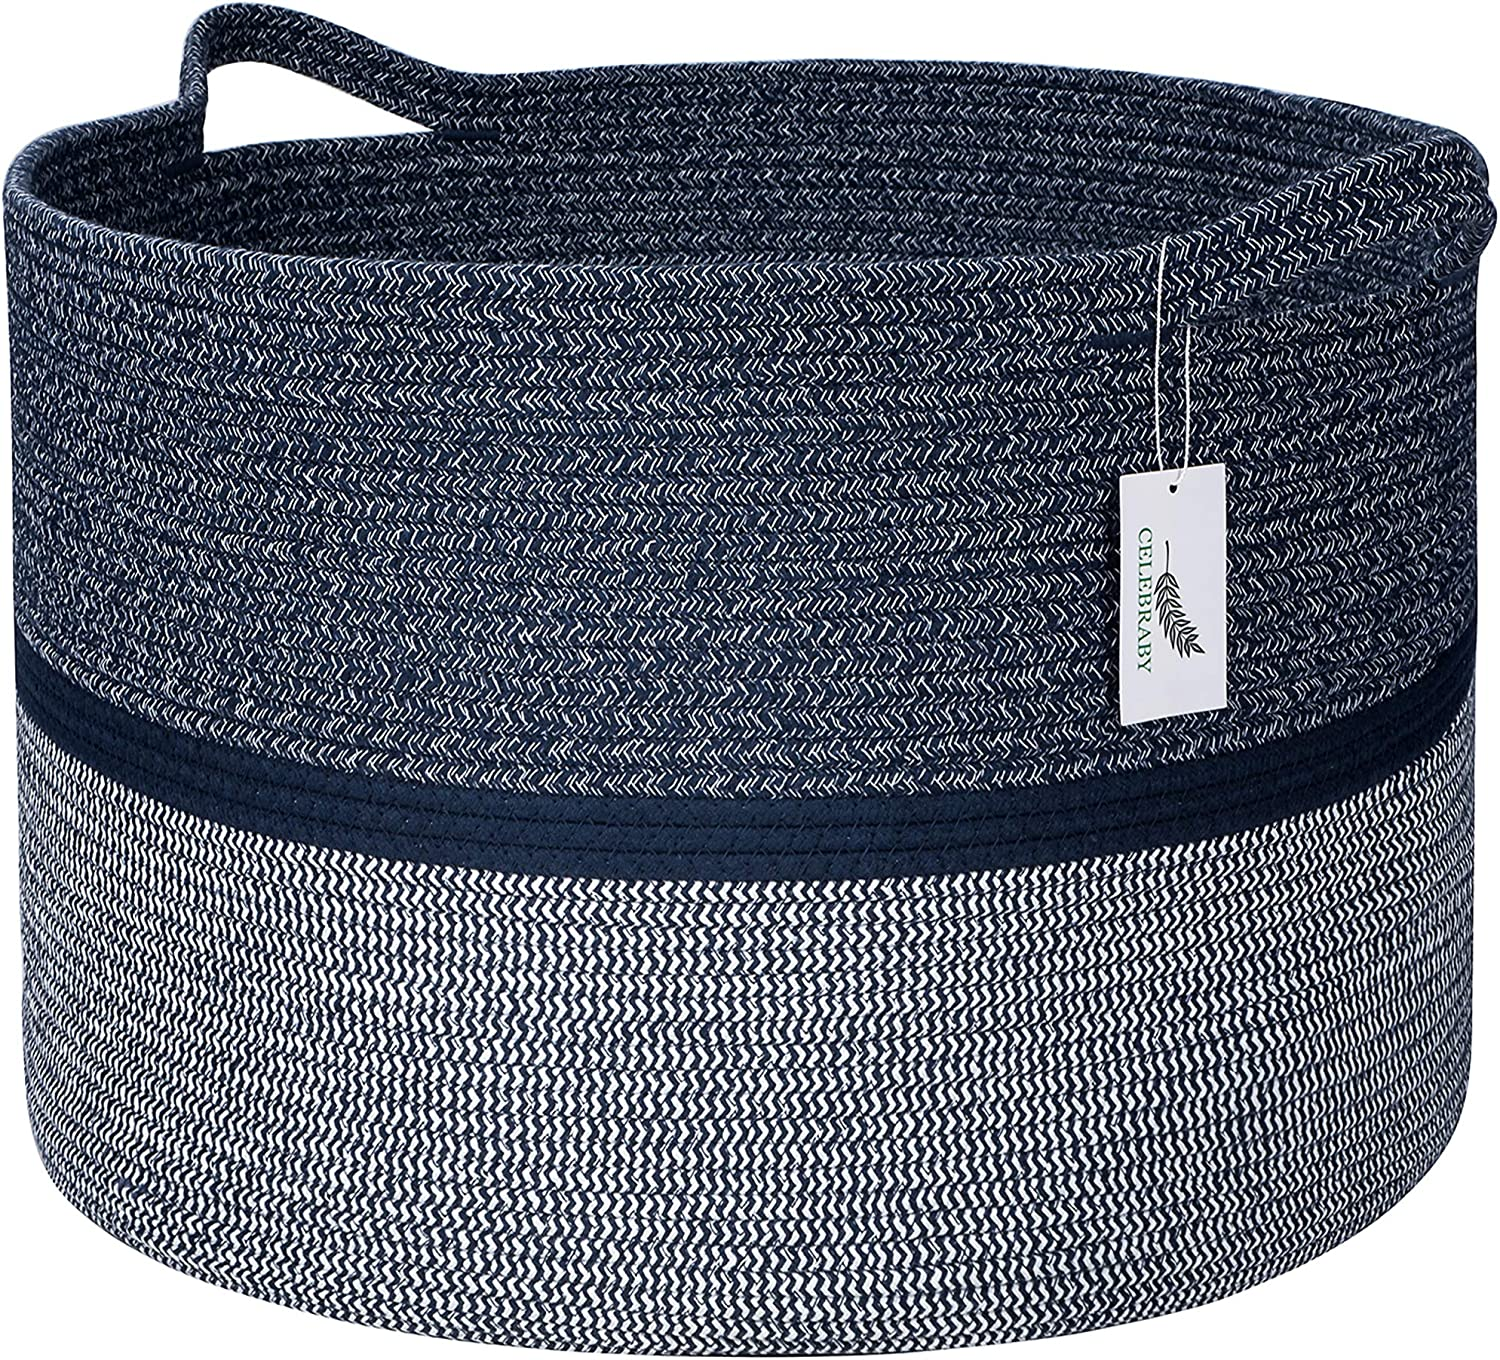 Celebraby Extra Large Cotton Rope Basket - 22 x 22 x 14 Woven Storage Baskets for Blanket, Nursery, Living Room, Baby & Kids Toys, Home Decor – Navy Blue Natural & Soft Laundry Hamper with Sturdy Handles